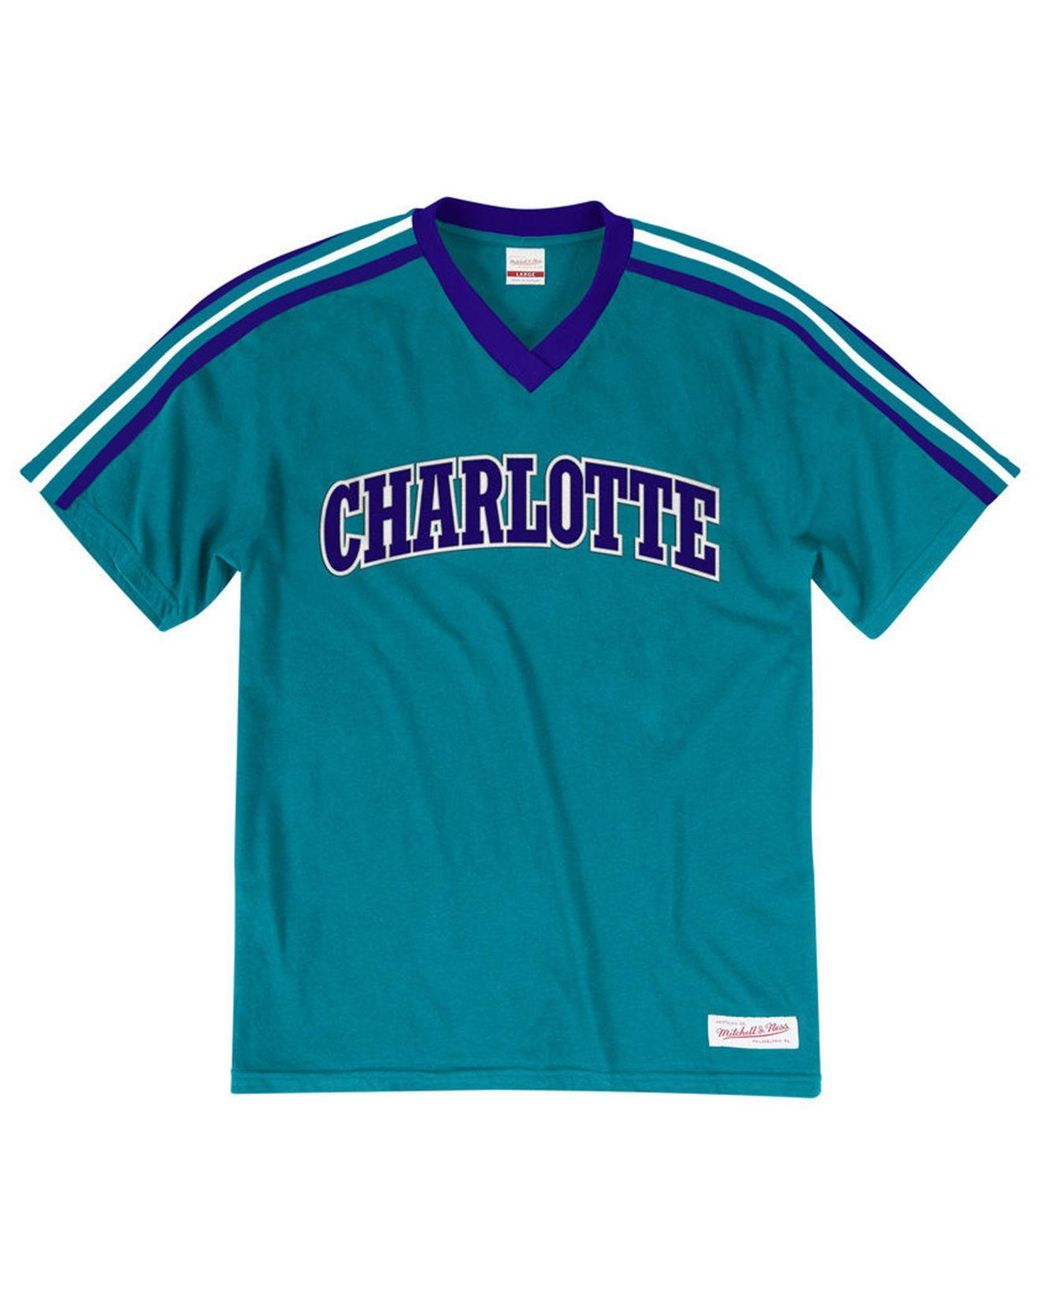 ddf5b4cdc Lyst - Mitchell   Ness Charlotte Hornets Overtime Win V-neck T-shirt in  Blue for Men